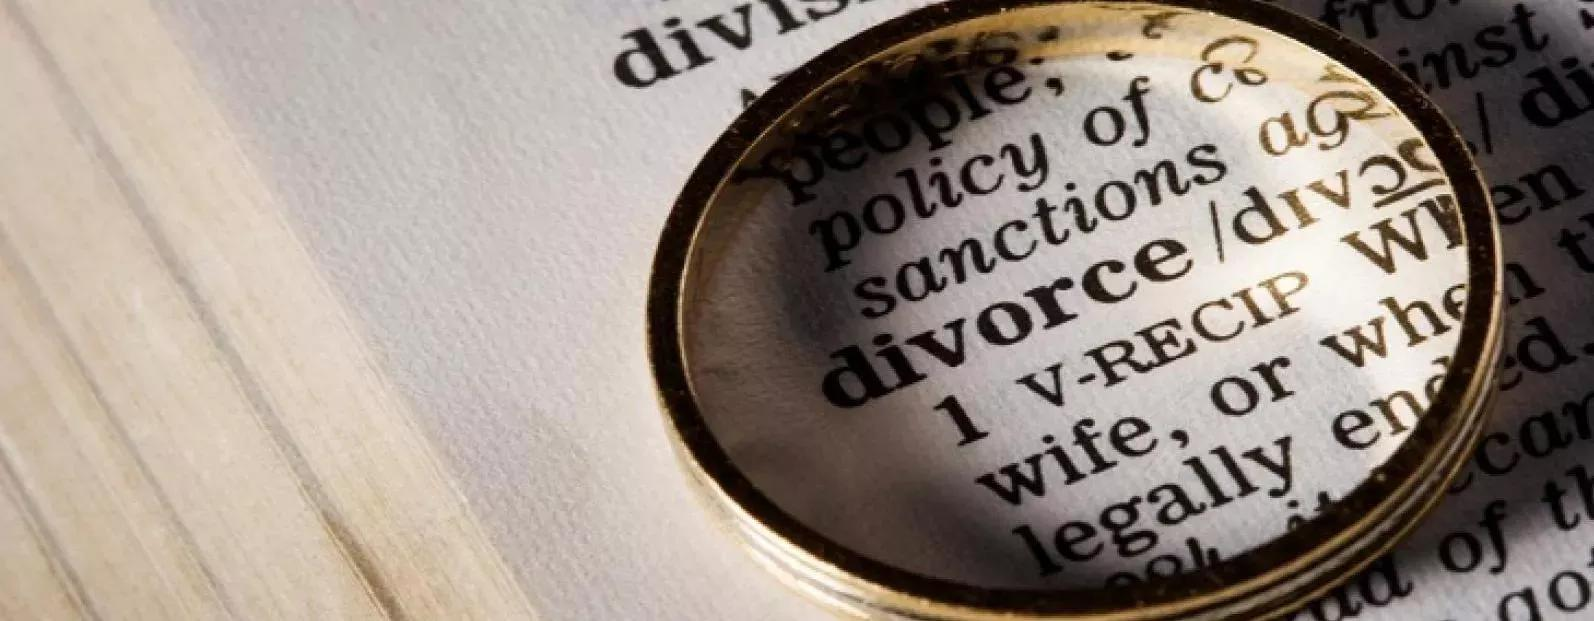 what are the grounds for divorce in india